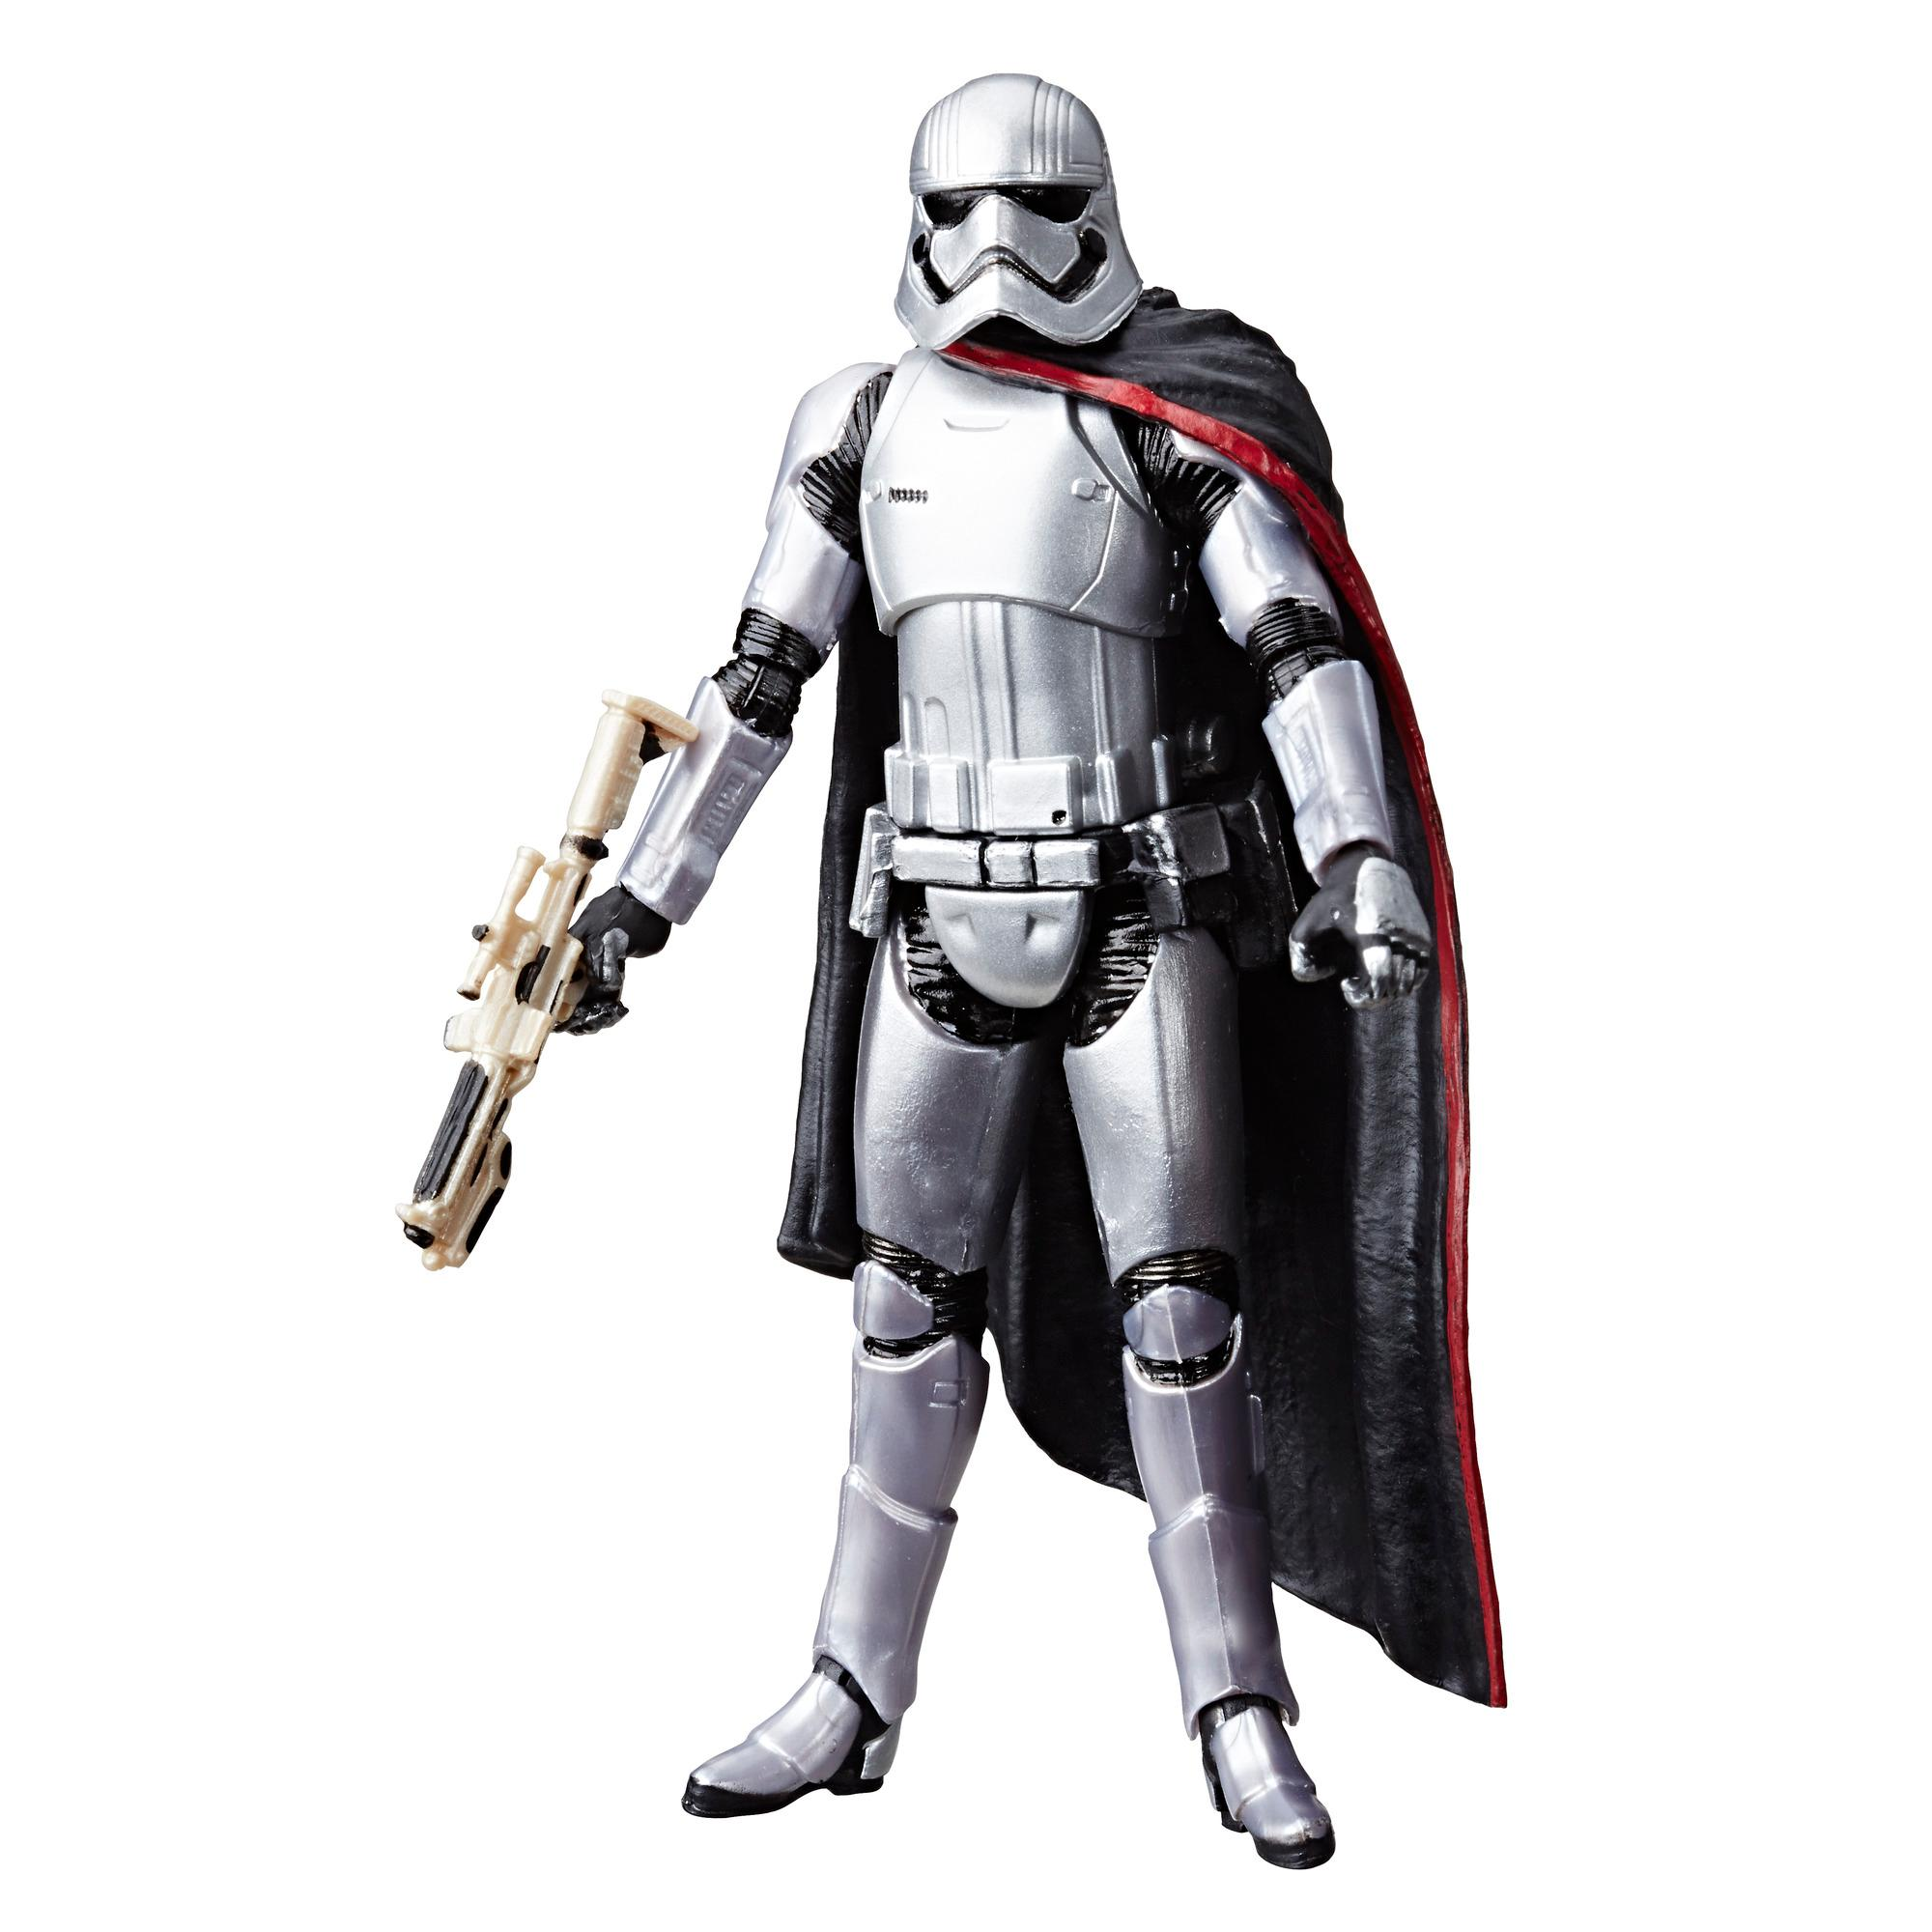 Star Wars The Vintage Collection Star Wars: The Force Awakens Captain Phasma 3.75-inch Figure